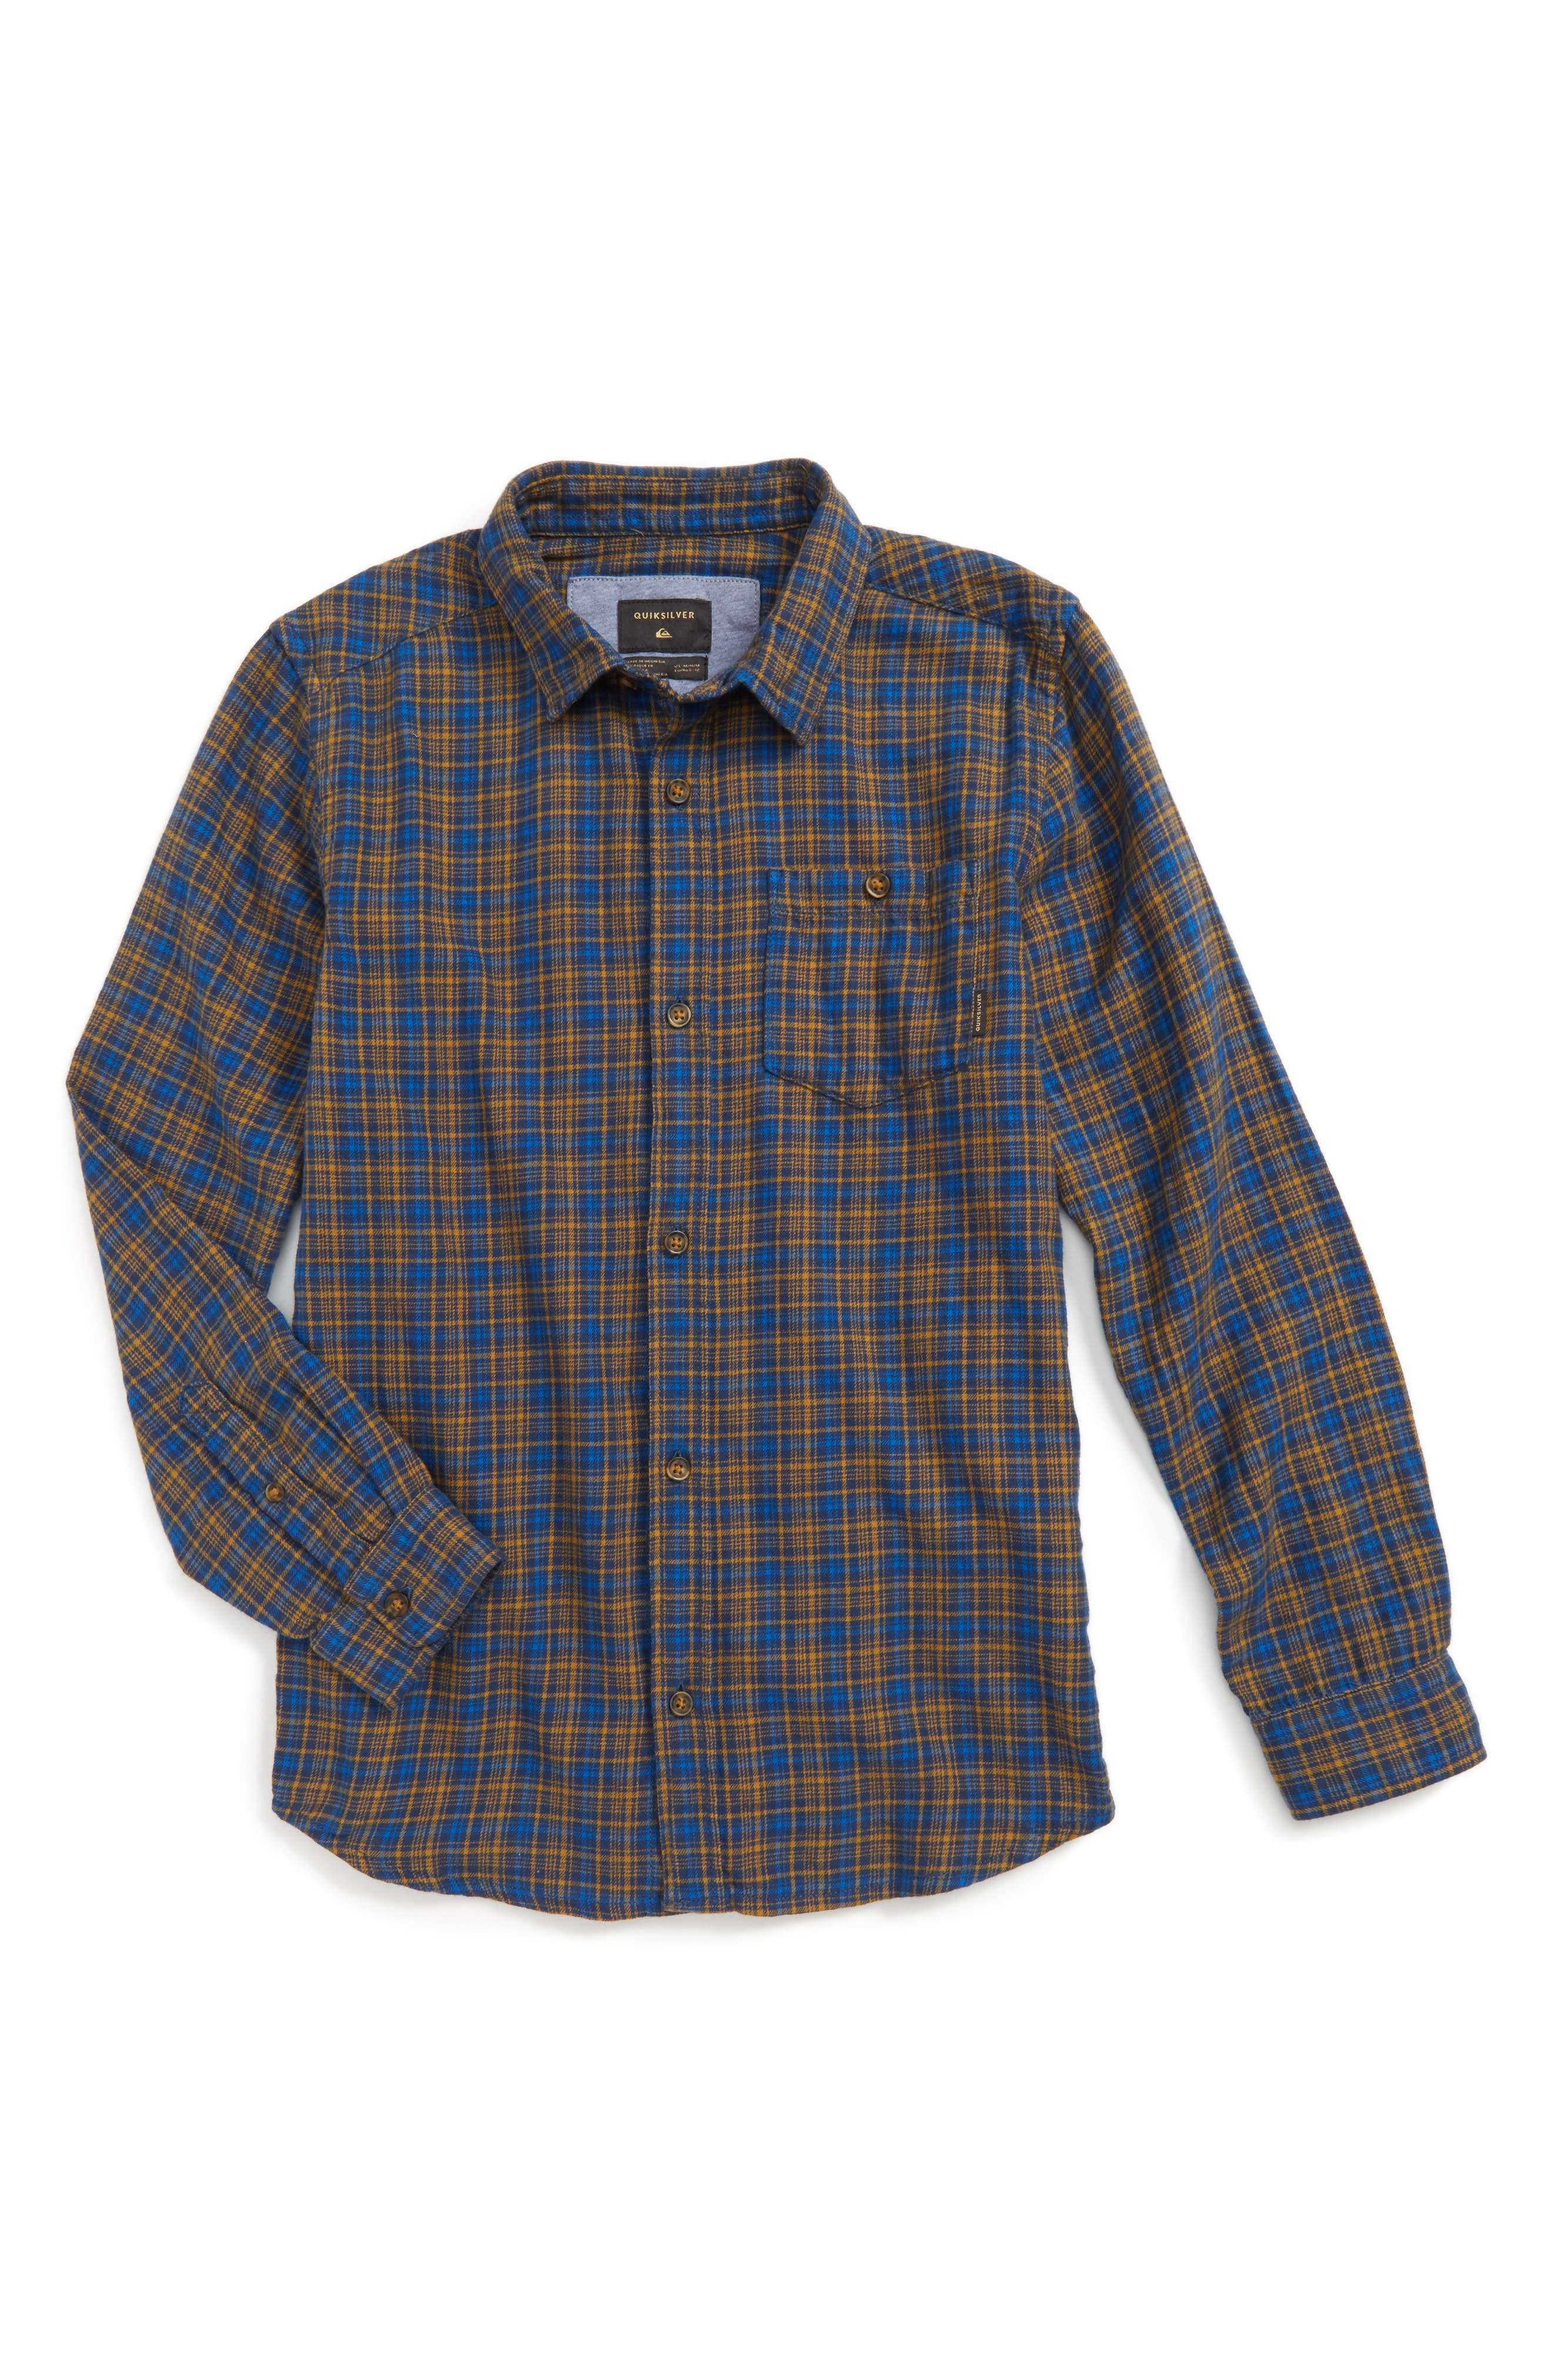 Quiksilver Phaser Setting Plaid Flannel Sport Shirt (Big Boys)